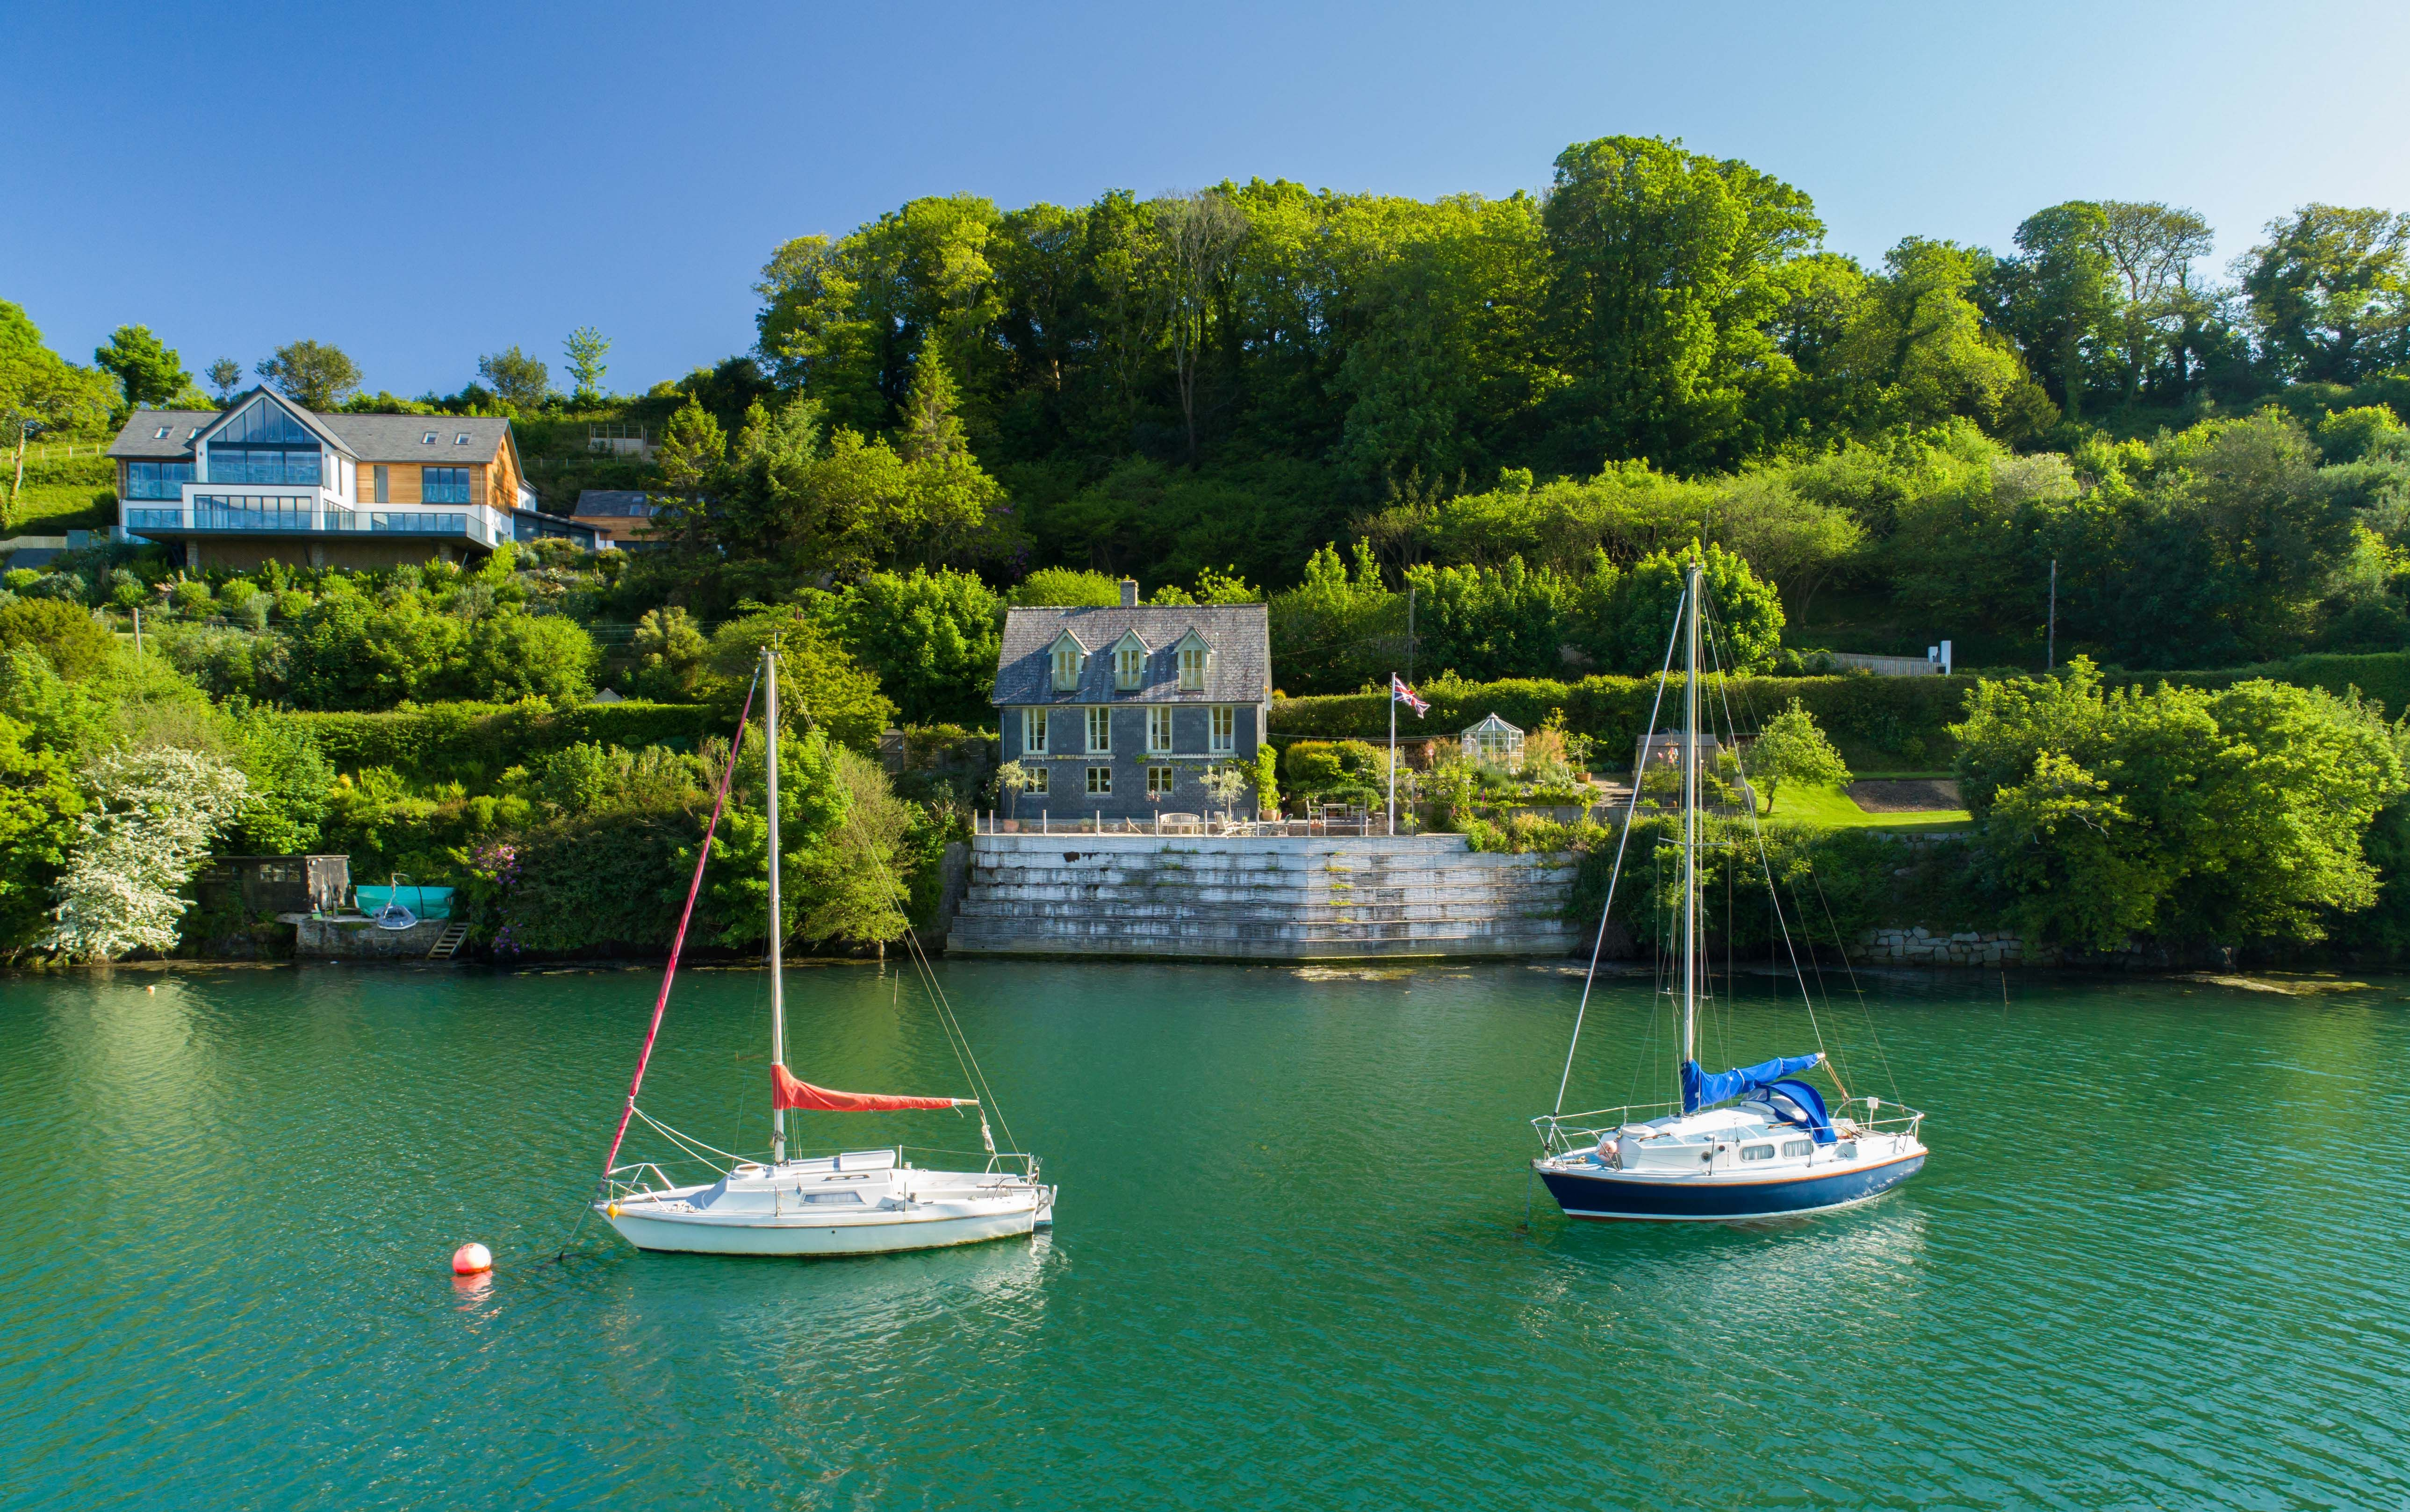 Awe Inspiring Idyllic Waterside Cornish Home With Private Quay For Sale Download Free Architecture Designs Salvmadebymaigaardcom